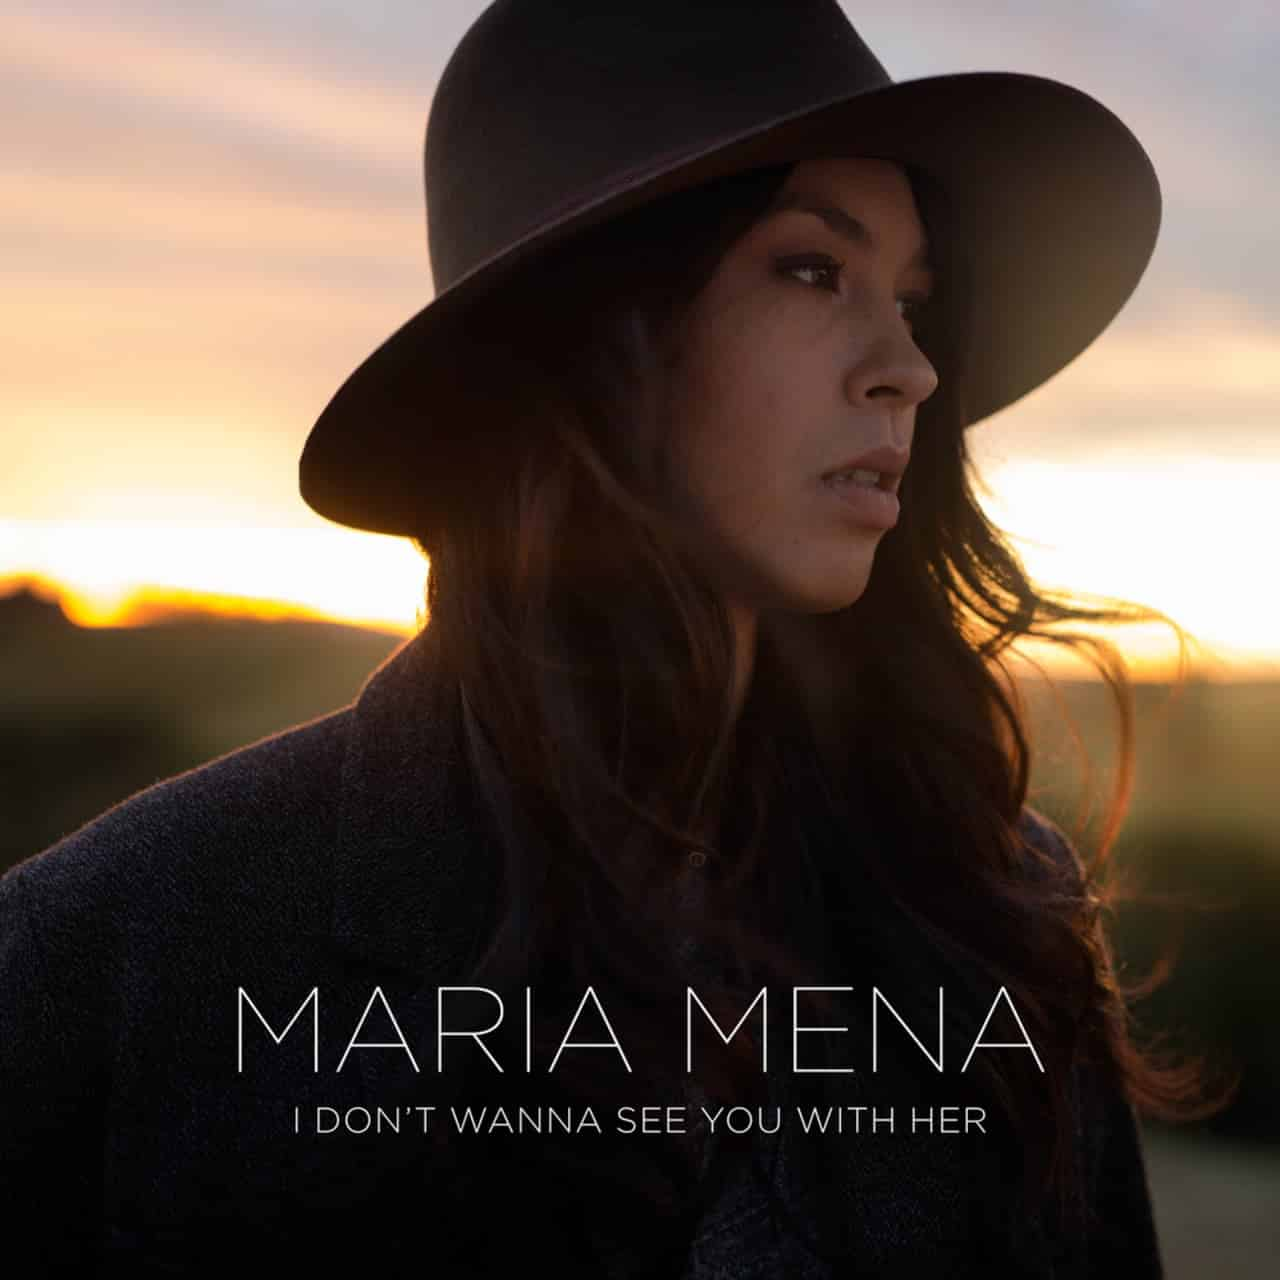 Maria-Mena-I-Dont-Wanna-See-You-With-Her-2015-mikrofwno.gr